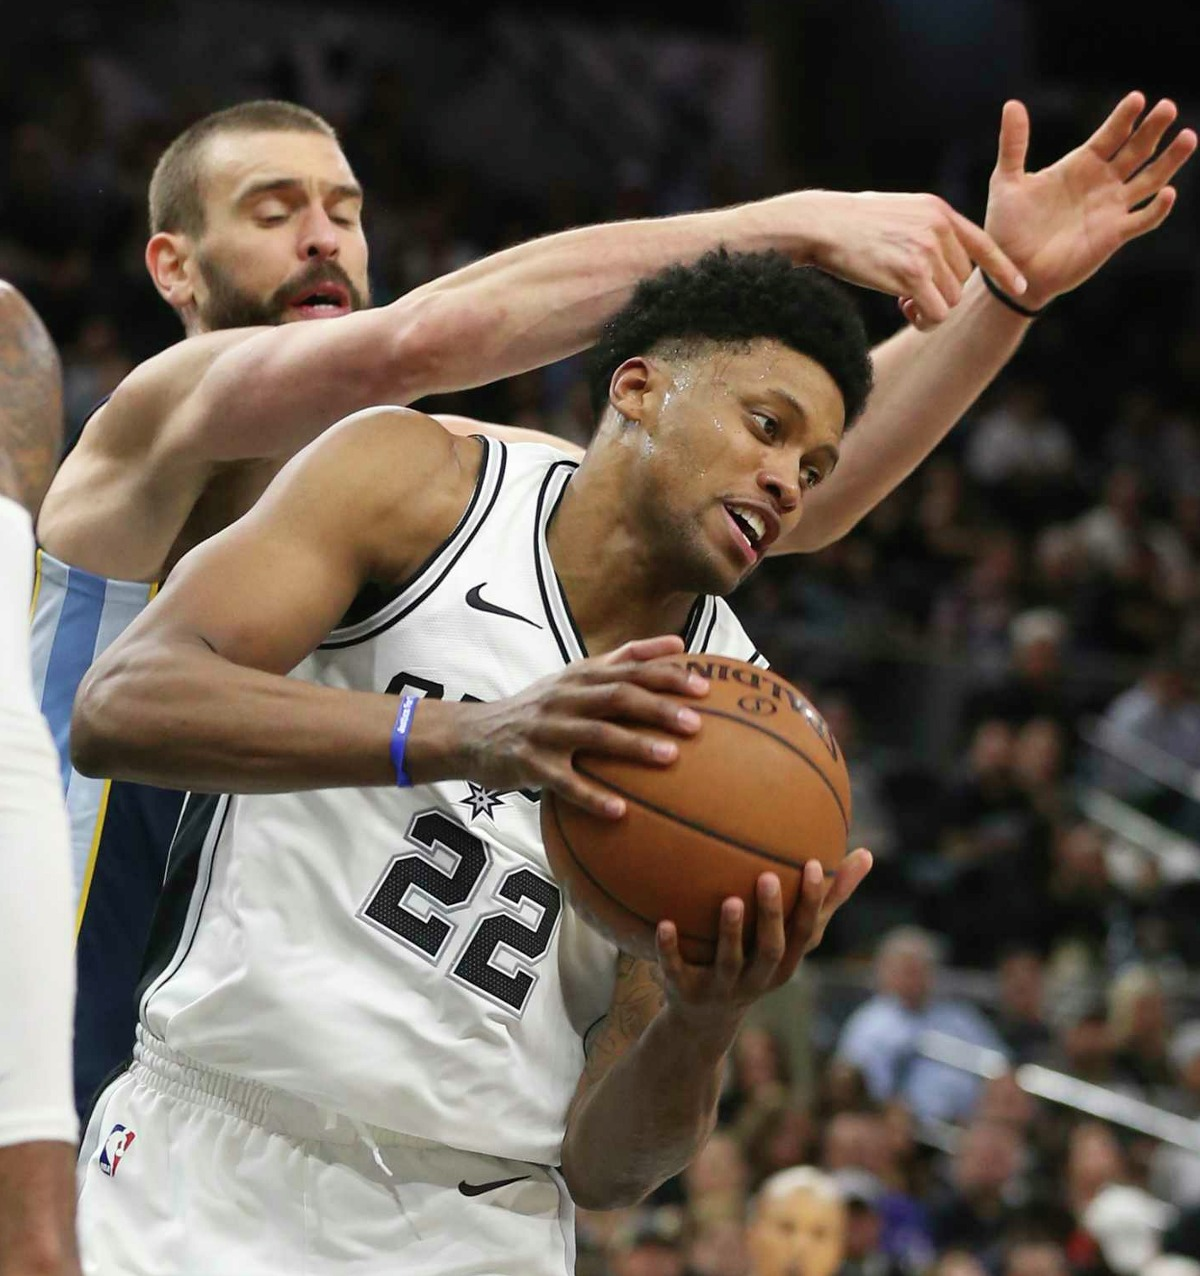 San Antonio Spurs' Rudy Gay snatches a rebound from Memphis Grizzlies' Marc Gasol during the second half at the AT&T Center, Wednesday, Nov. 29, 2017. The Spurs won 104-95.